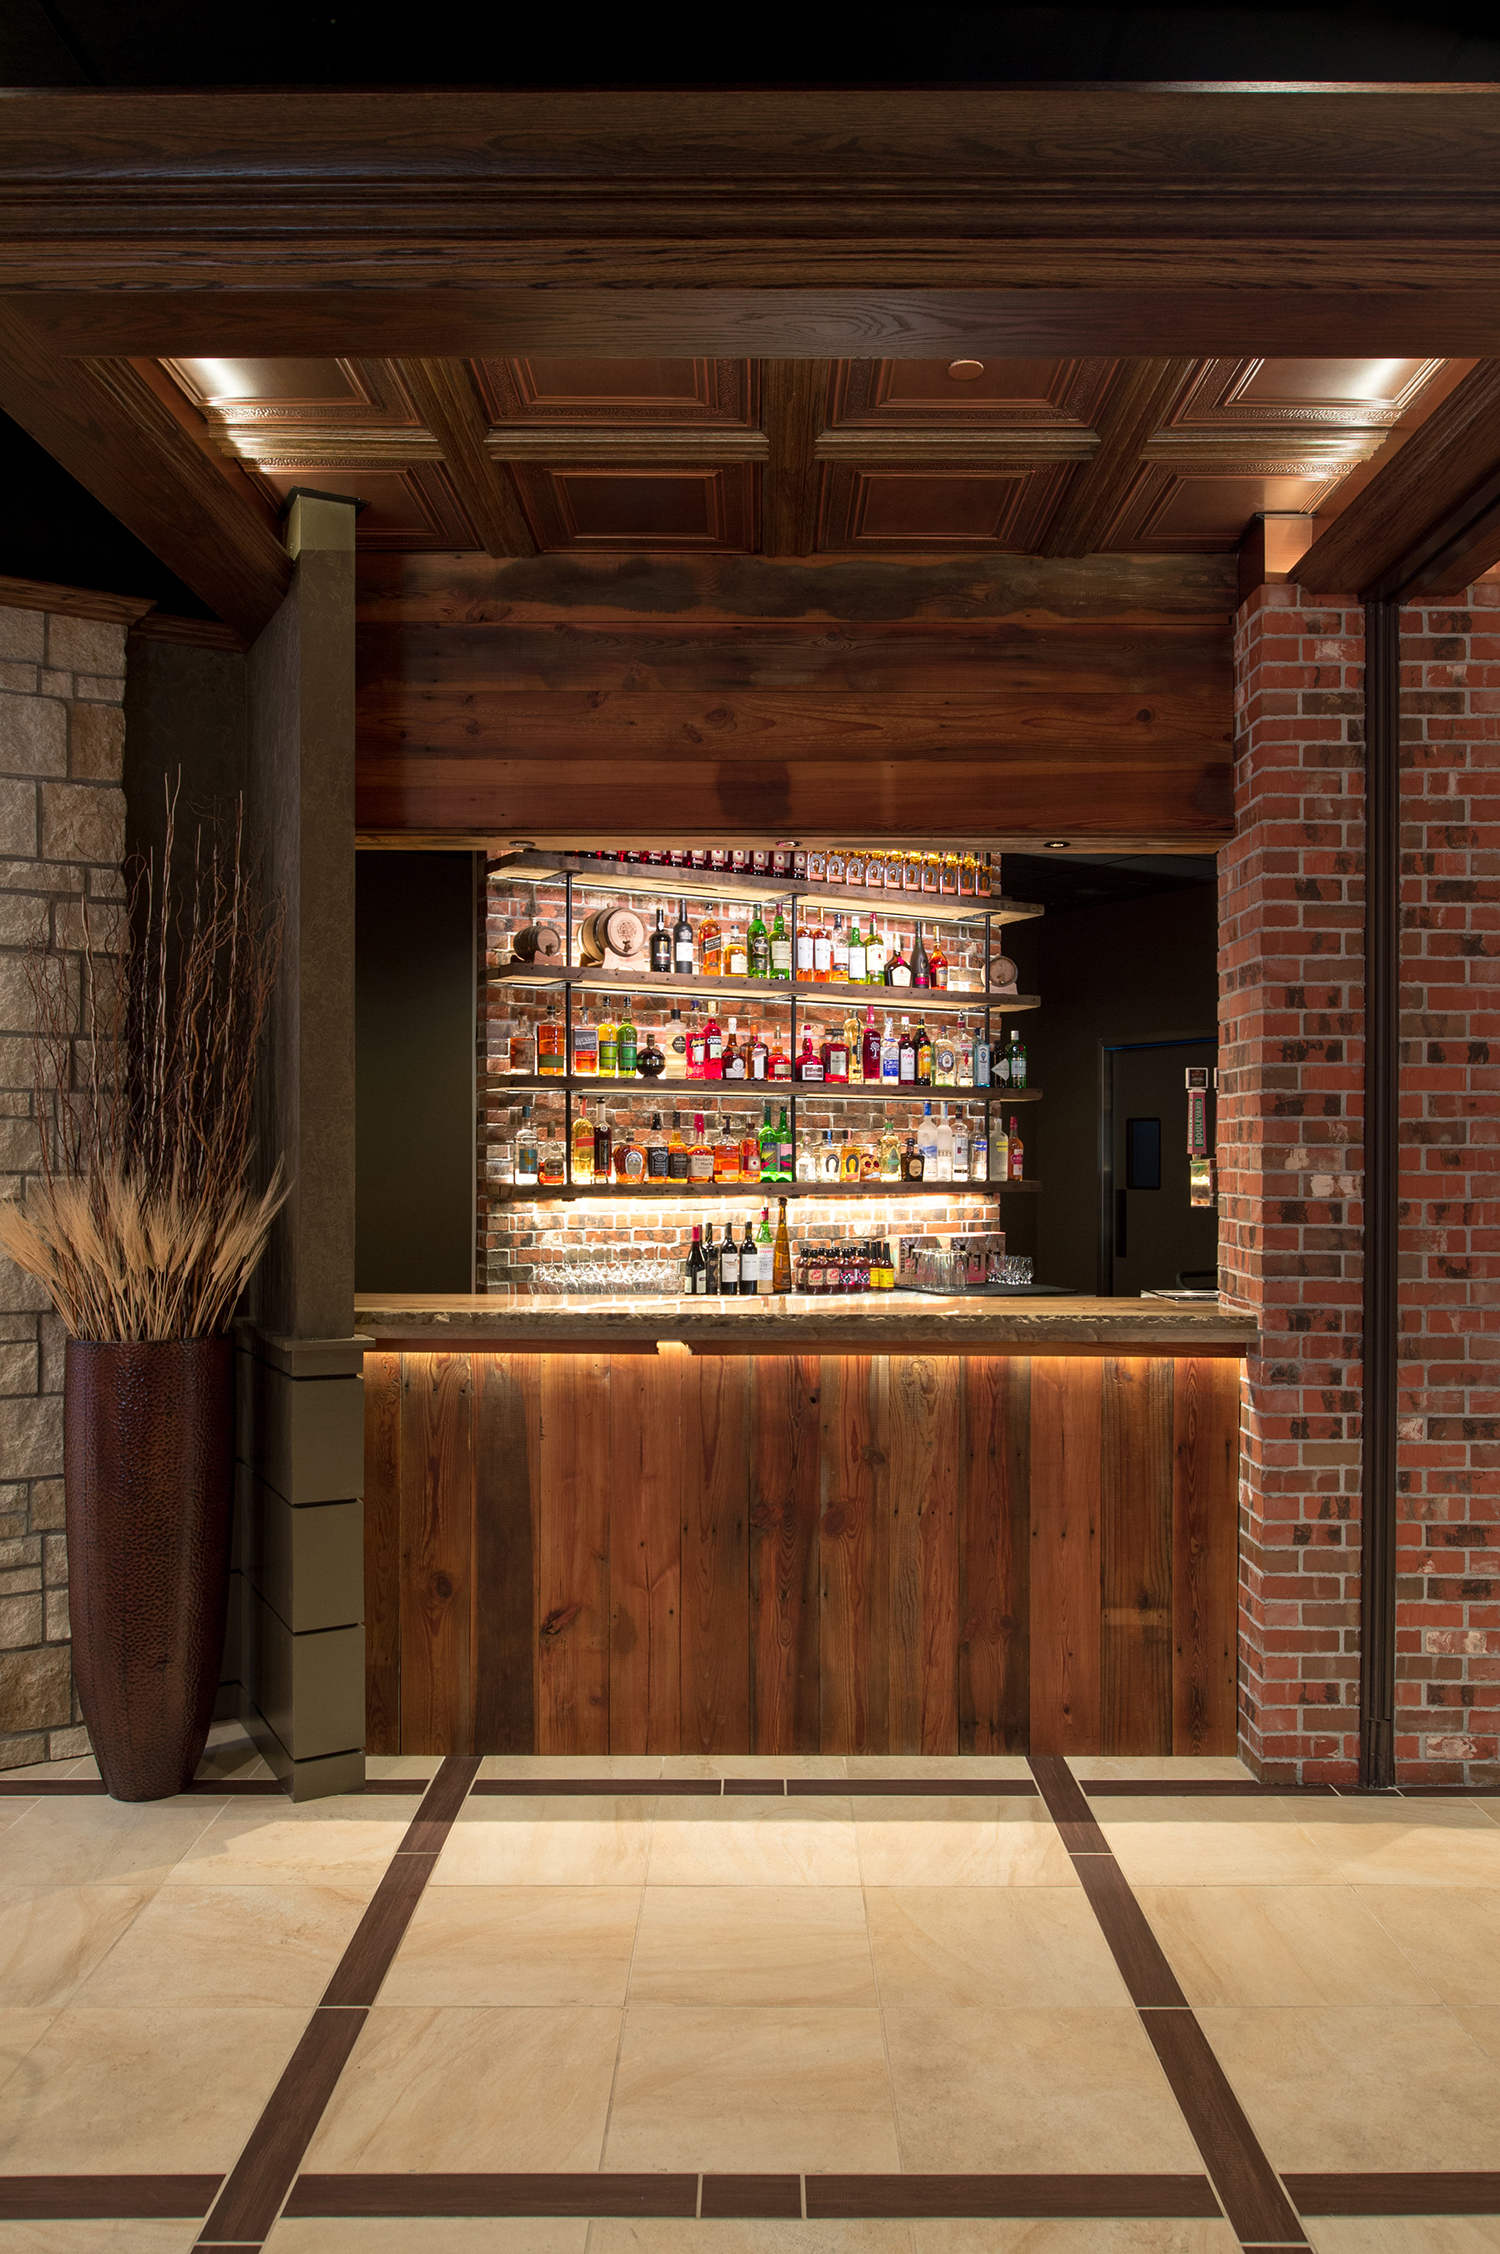 Reclaimed wood bar facade